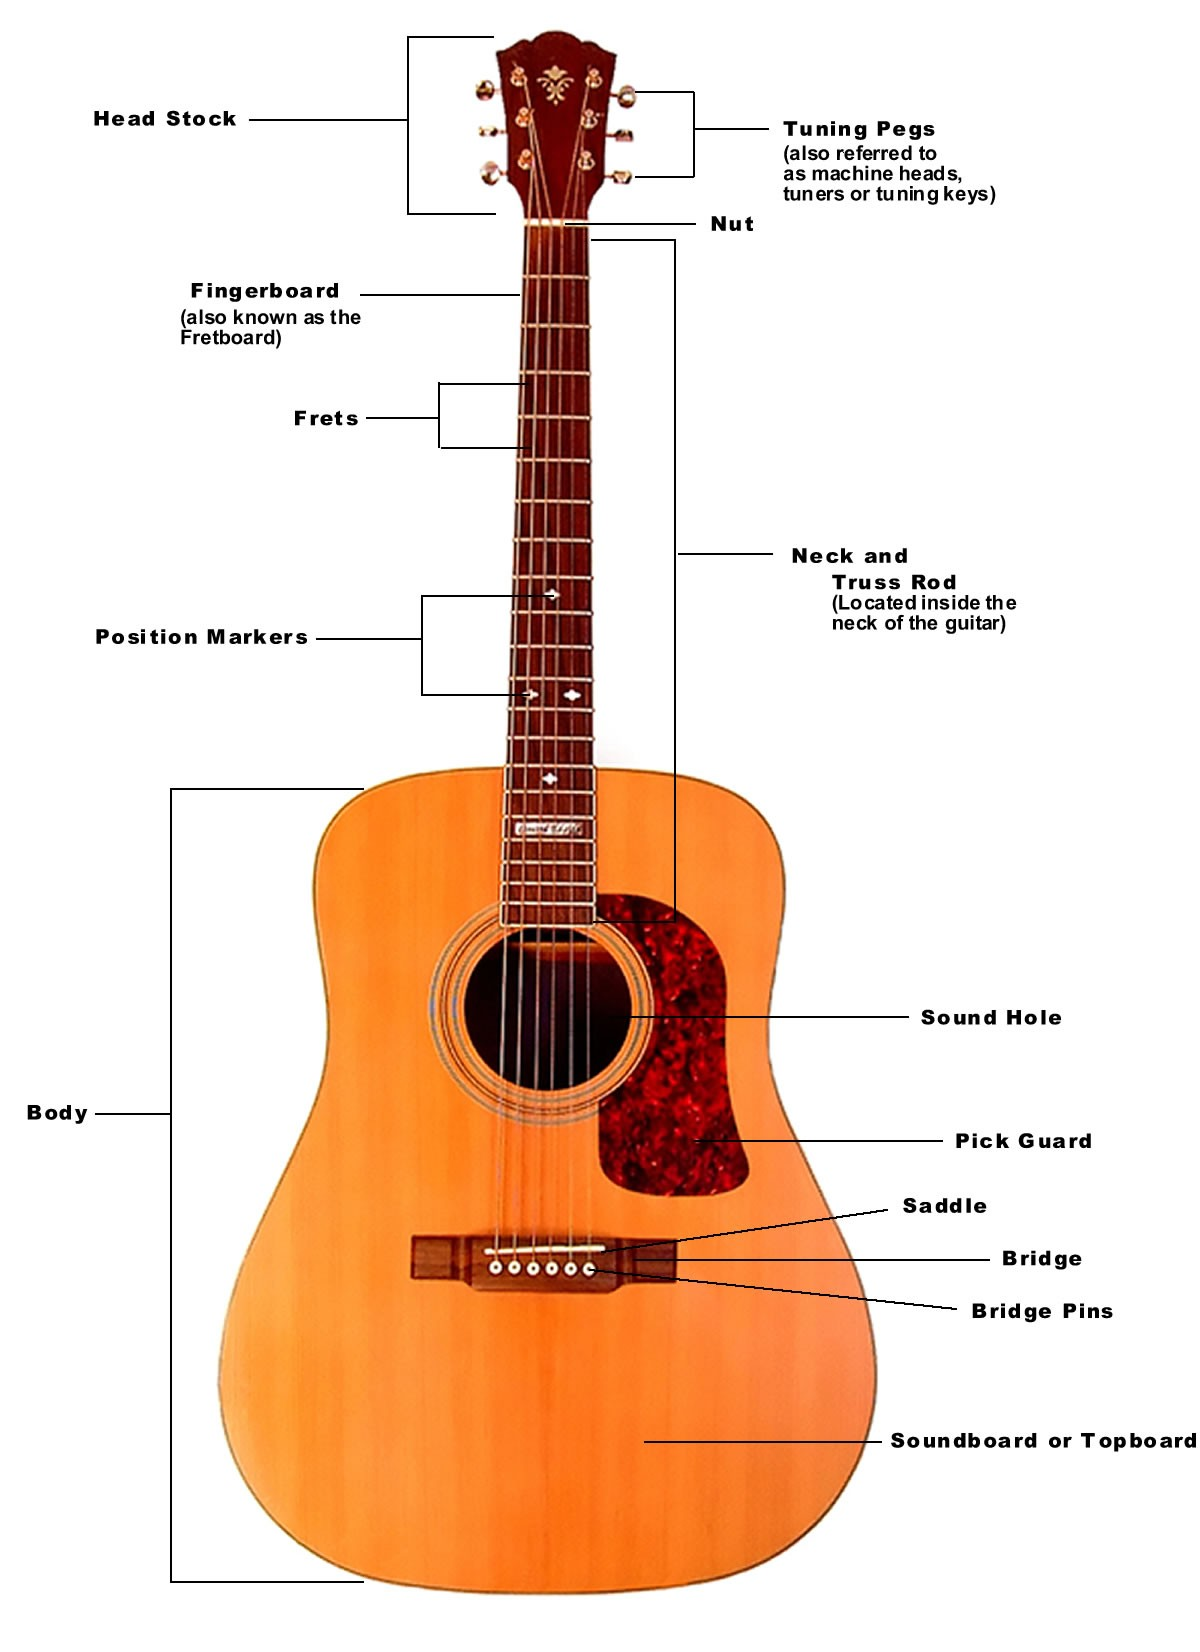 Taylor guitar wiring diagram amazing guitar diagram s electrical and wiring diagram ideas asfbconference2016 Images